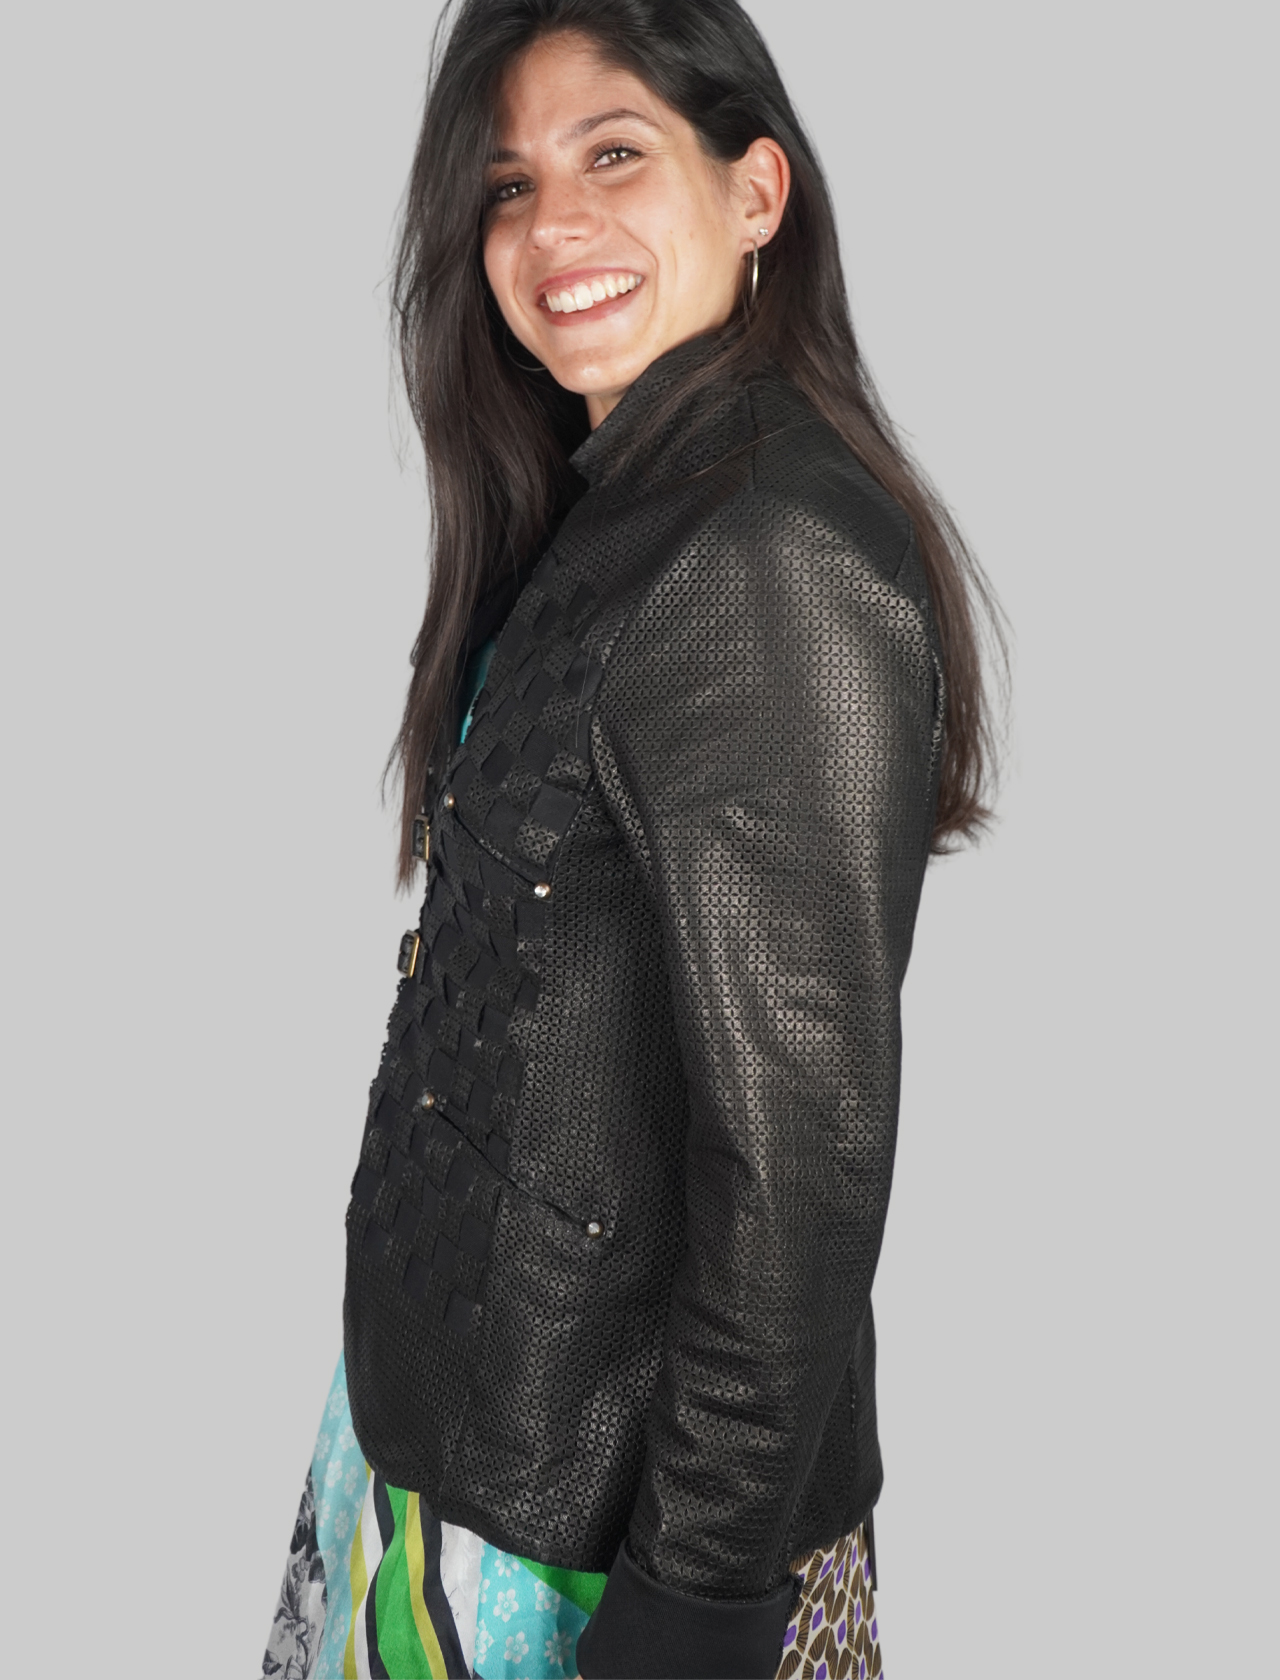 Women's Clothing Mud Perforated Leather Jacket with Straps and Buckles Spatarella   Jackets   2152001